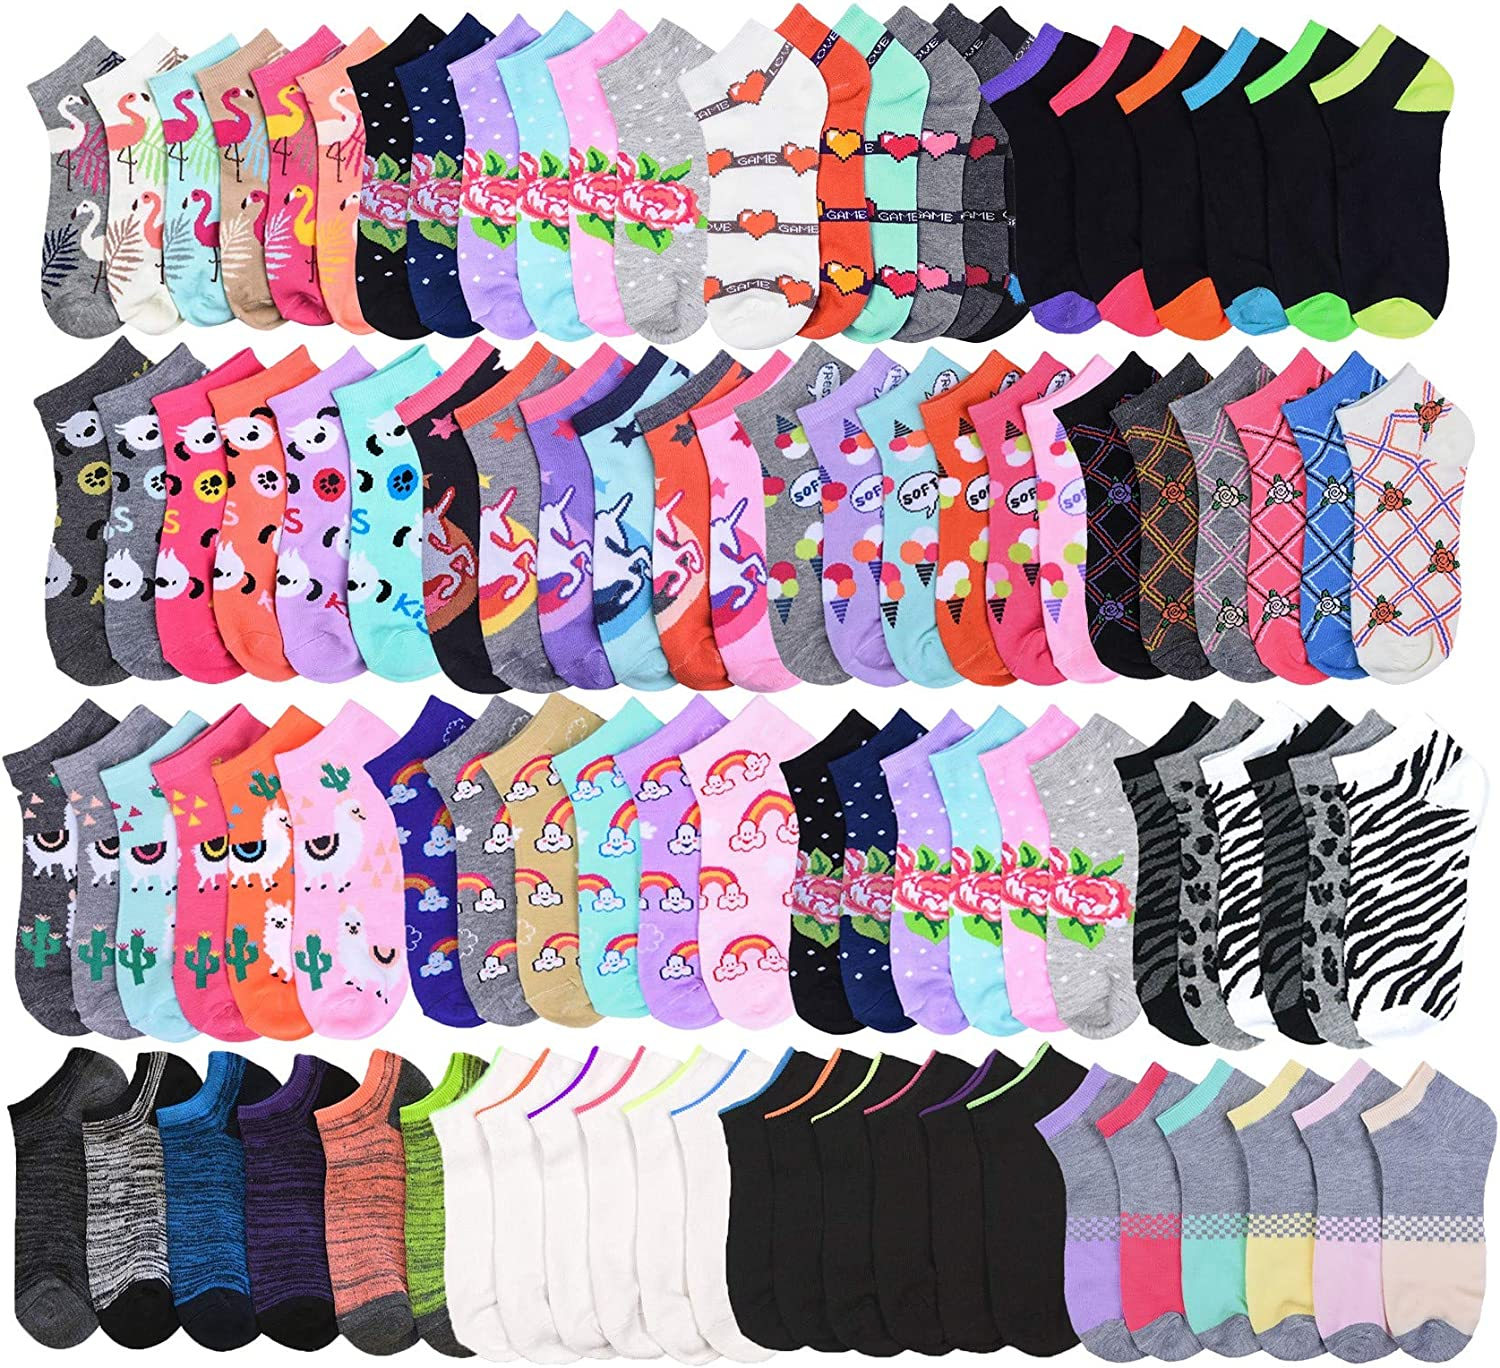 4 12 Pairs Teen Cotton Socks No Show Low Cut School Solid White Size 6-8 Unisex